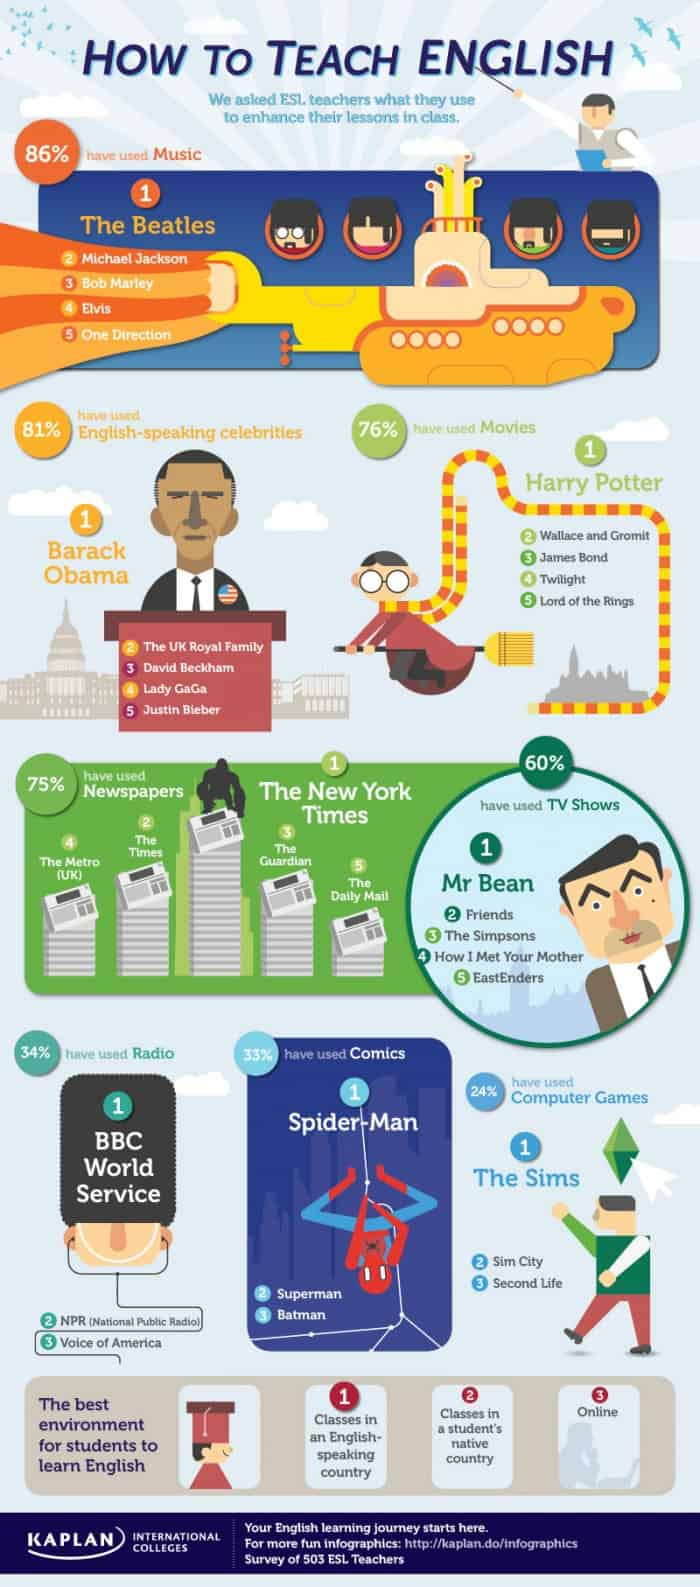 How to Teach English Infographic